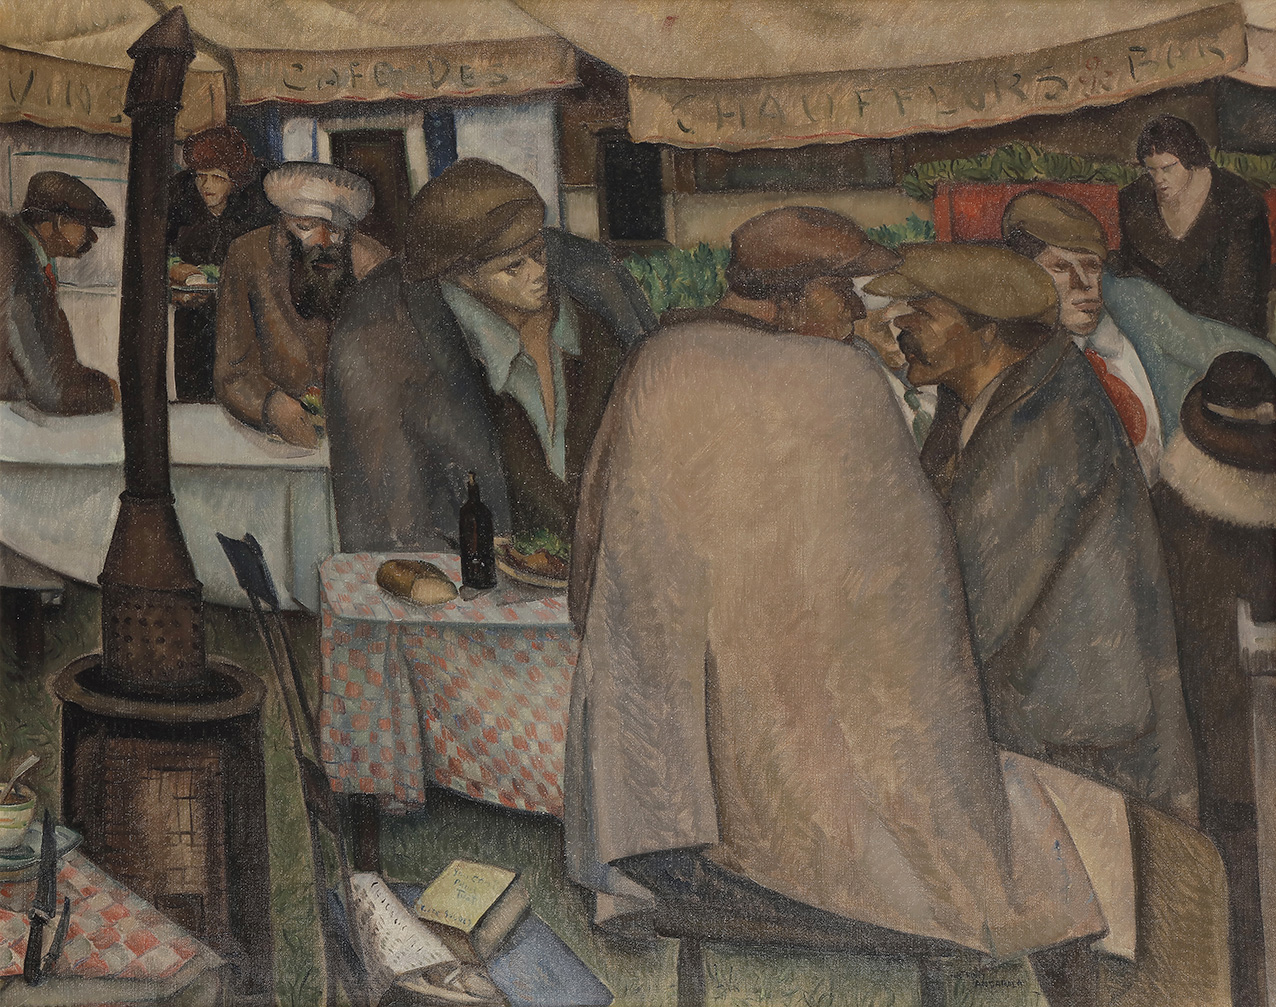 Anthony Angarola (1893-1929), Truck Drivers' Cafe, 1929, oil on canvas, 81 x 100 cm (31.89 x 39.38 in).Result: €32,000